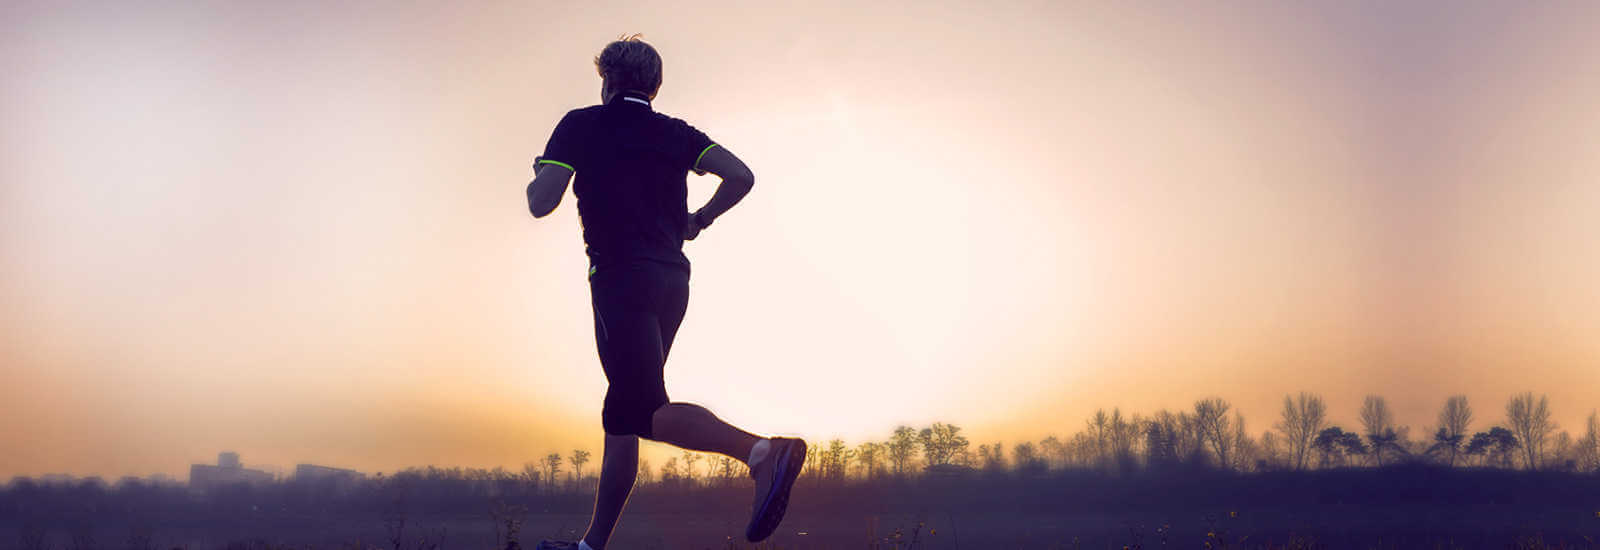 orthopedics man running